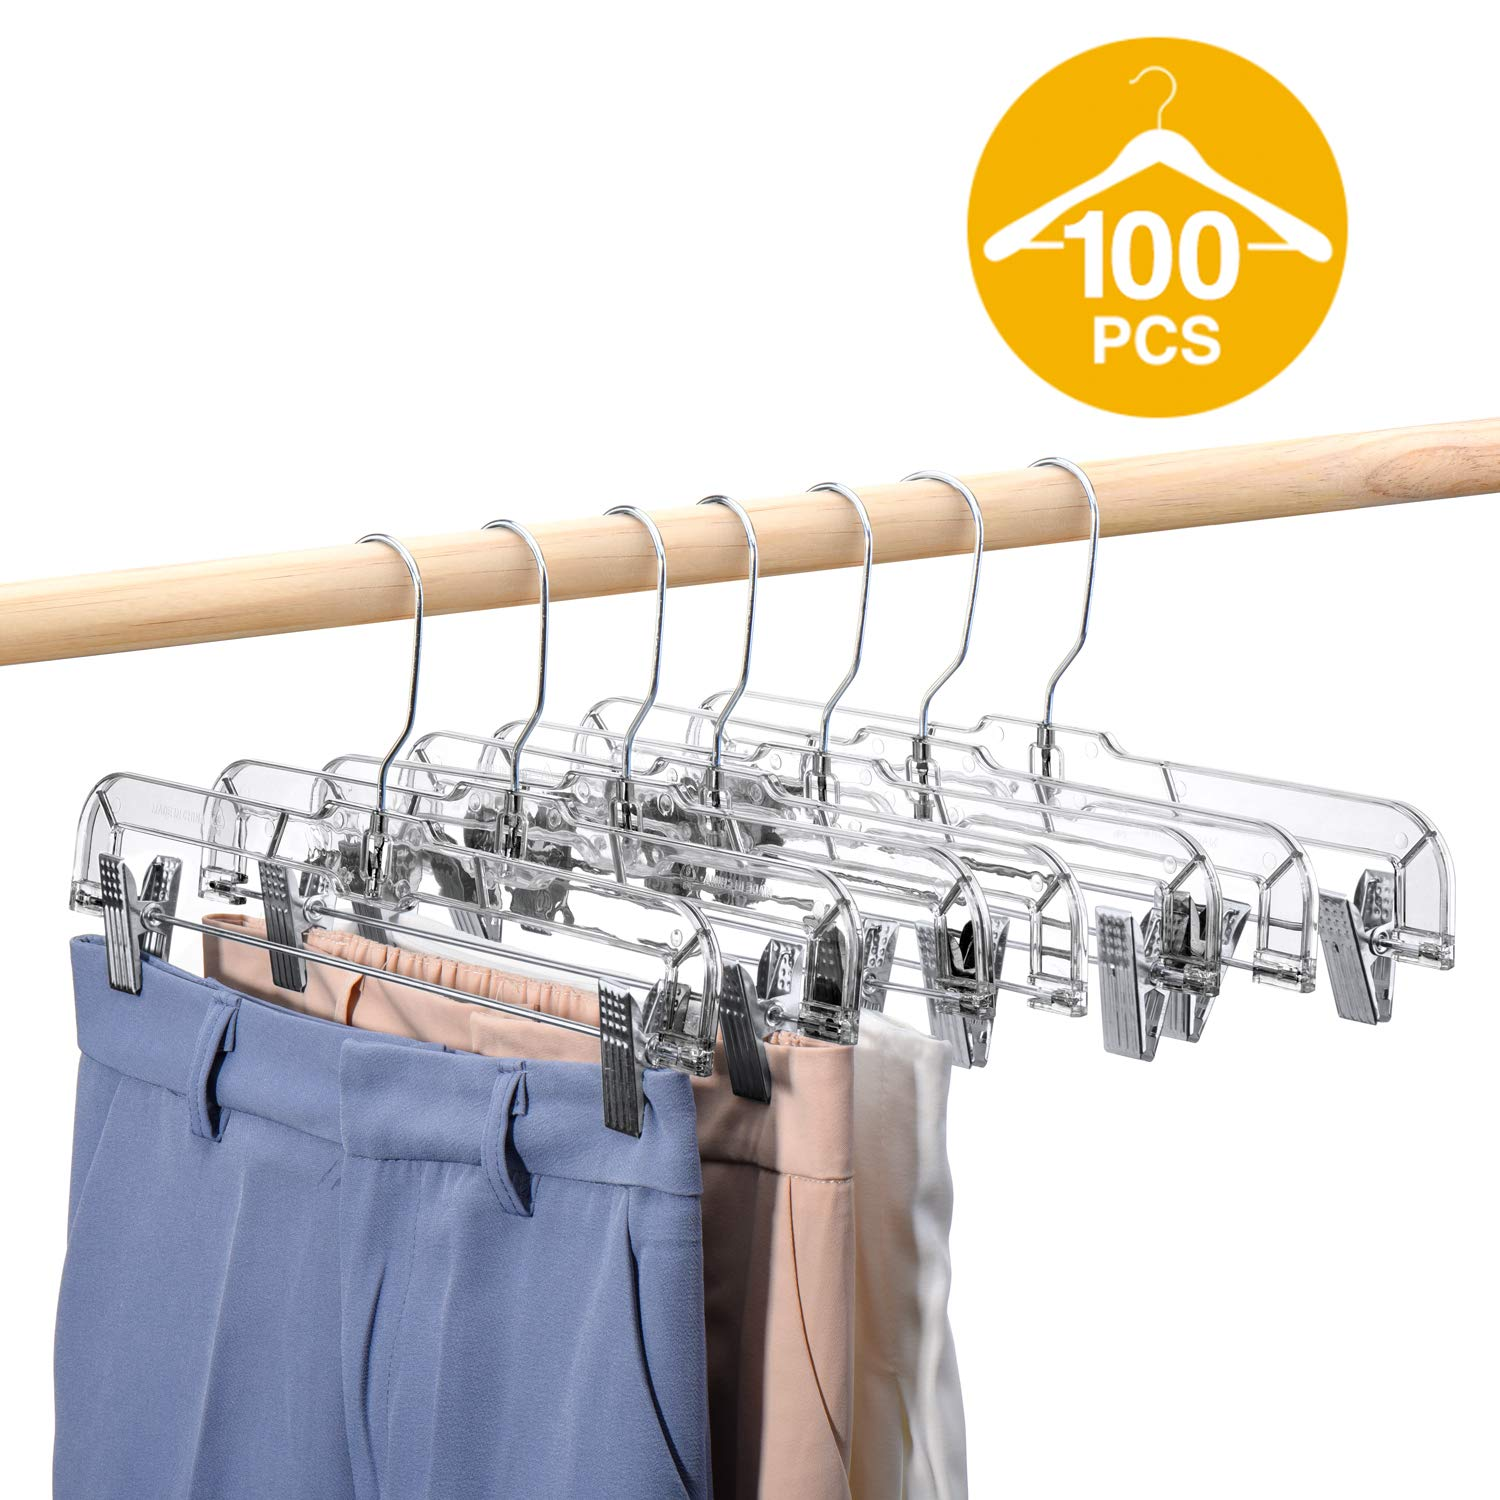 HOUSE DAY 100 Pack 14 inch Clear Plastic Skirt Hangers with Clips, Skirt Hangers, Clip Hangers for Pants,Trouser Bulk Plastic Pants Hangers by HOUSE DAY